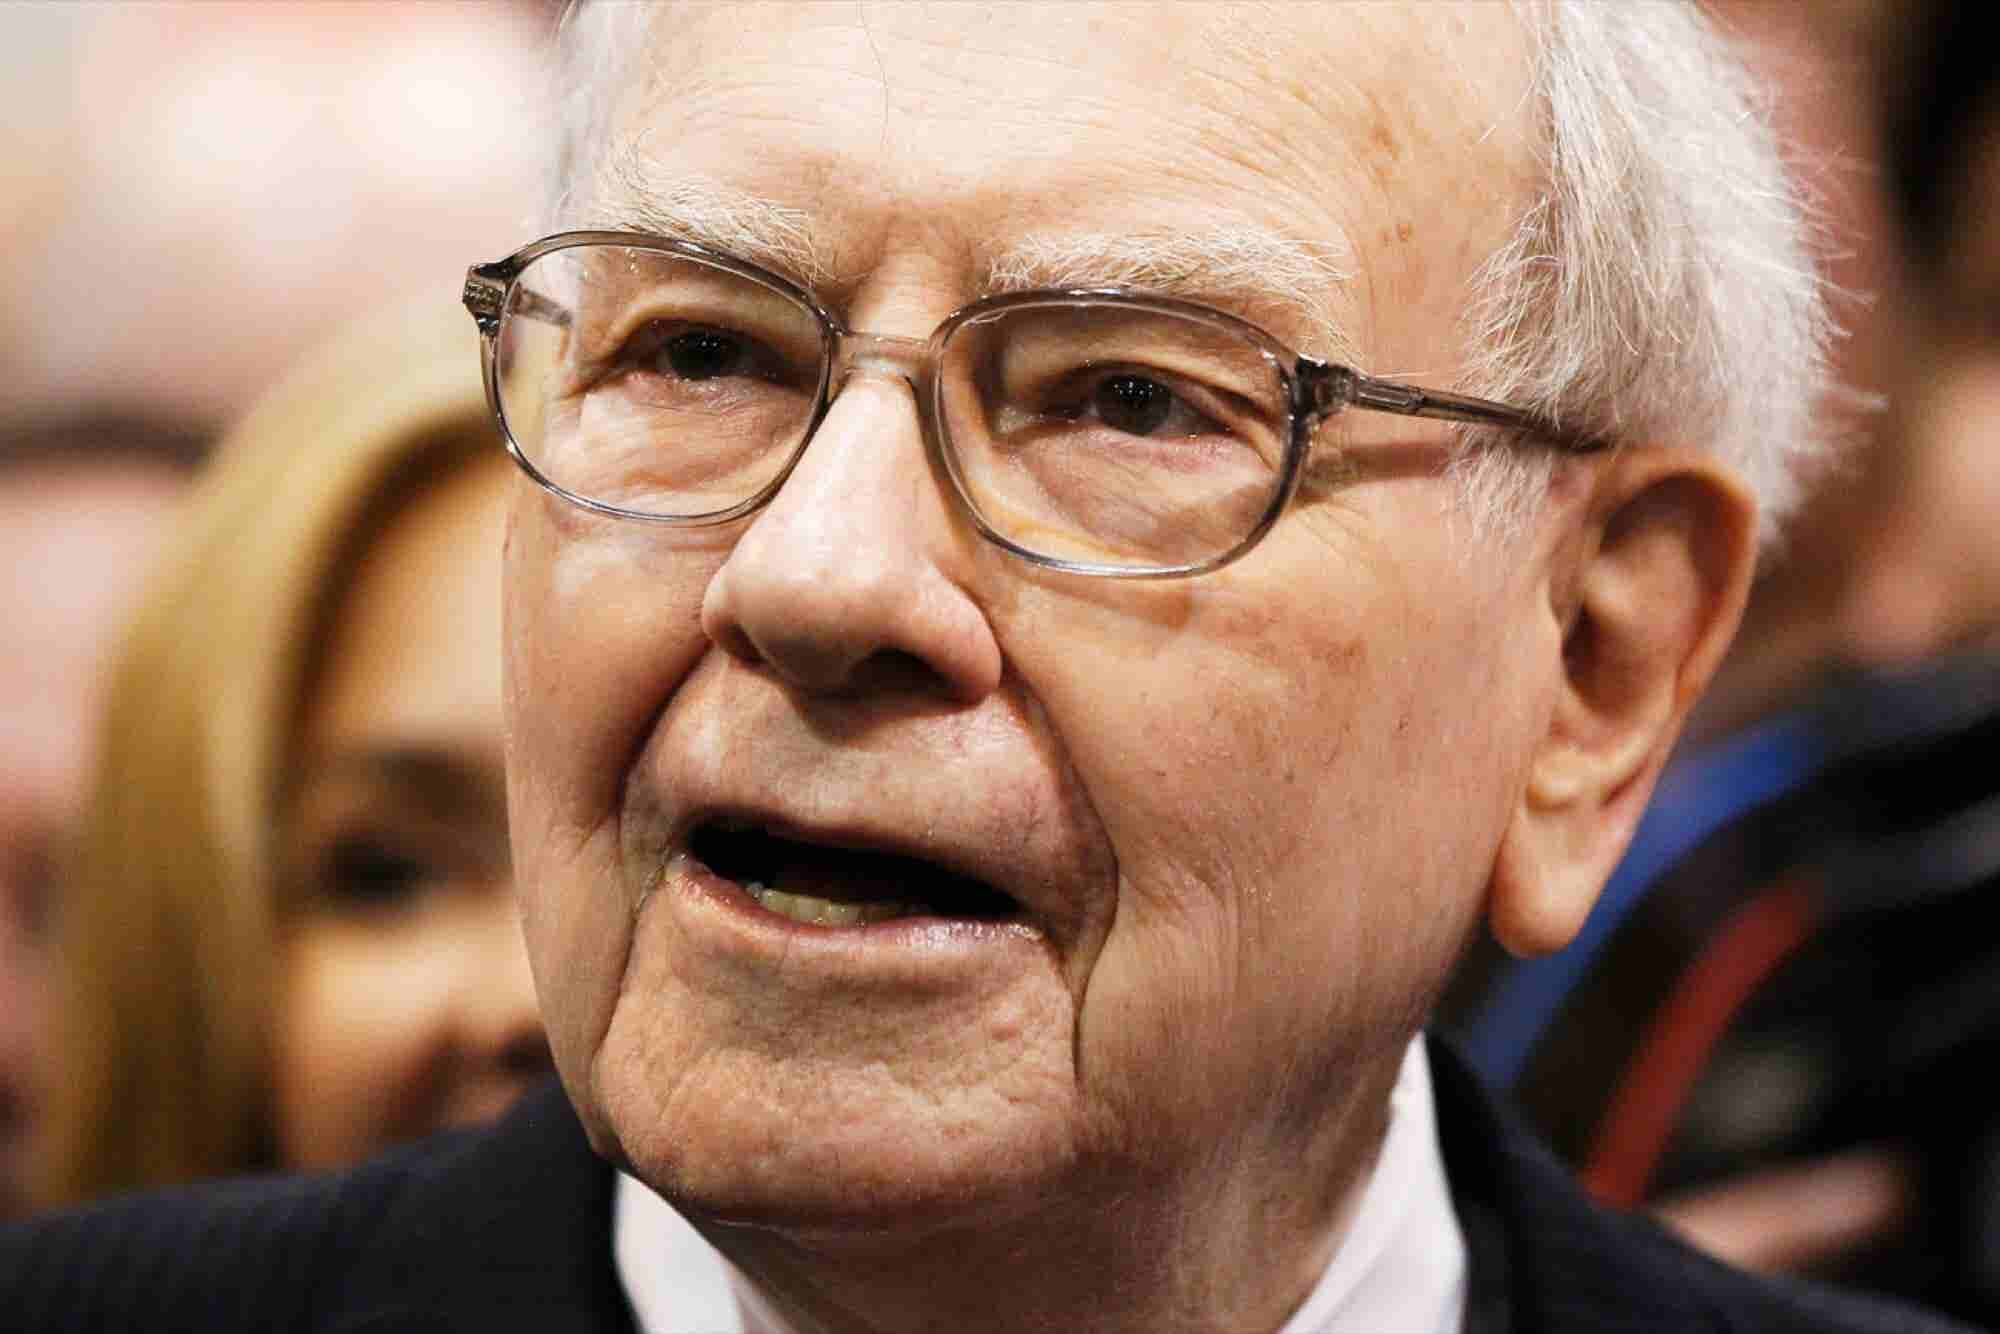 Why Warren Buffett Is the Mahatma Gandhi of Capitalism